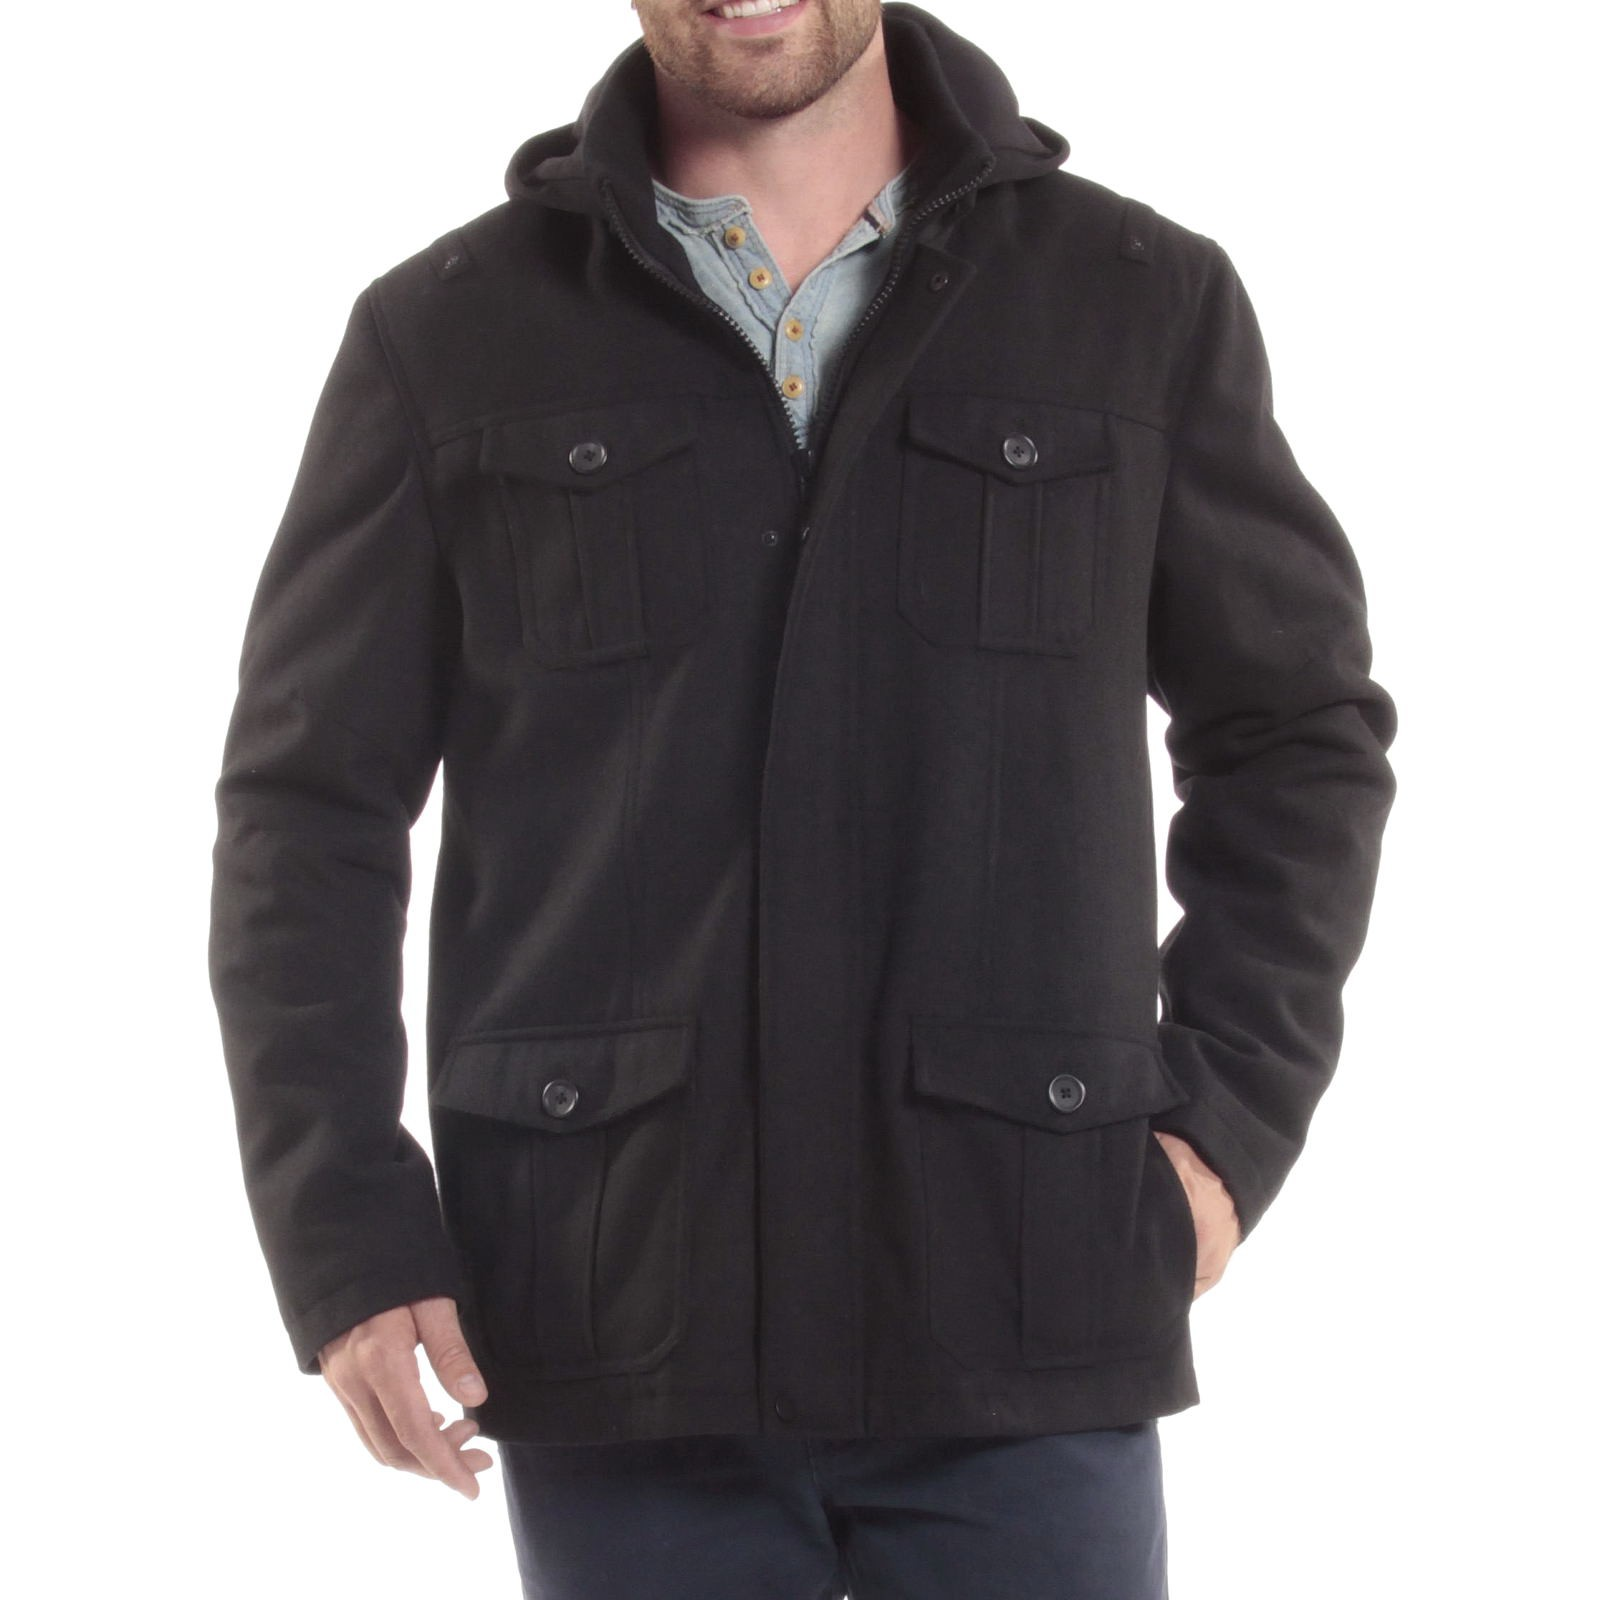 Alpine-Swiss-Noah-Mens-Wool-Coat-Parka-with-Removable-Hood-Jacket-Cargo-Pockets thumbnail 24